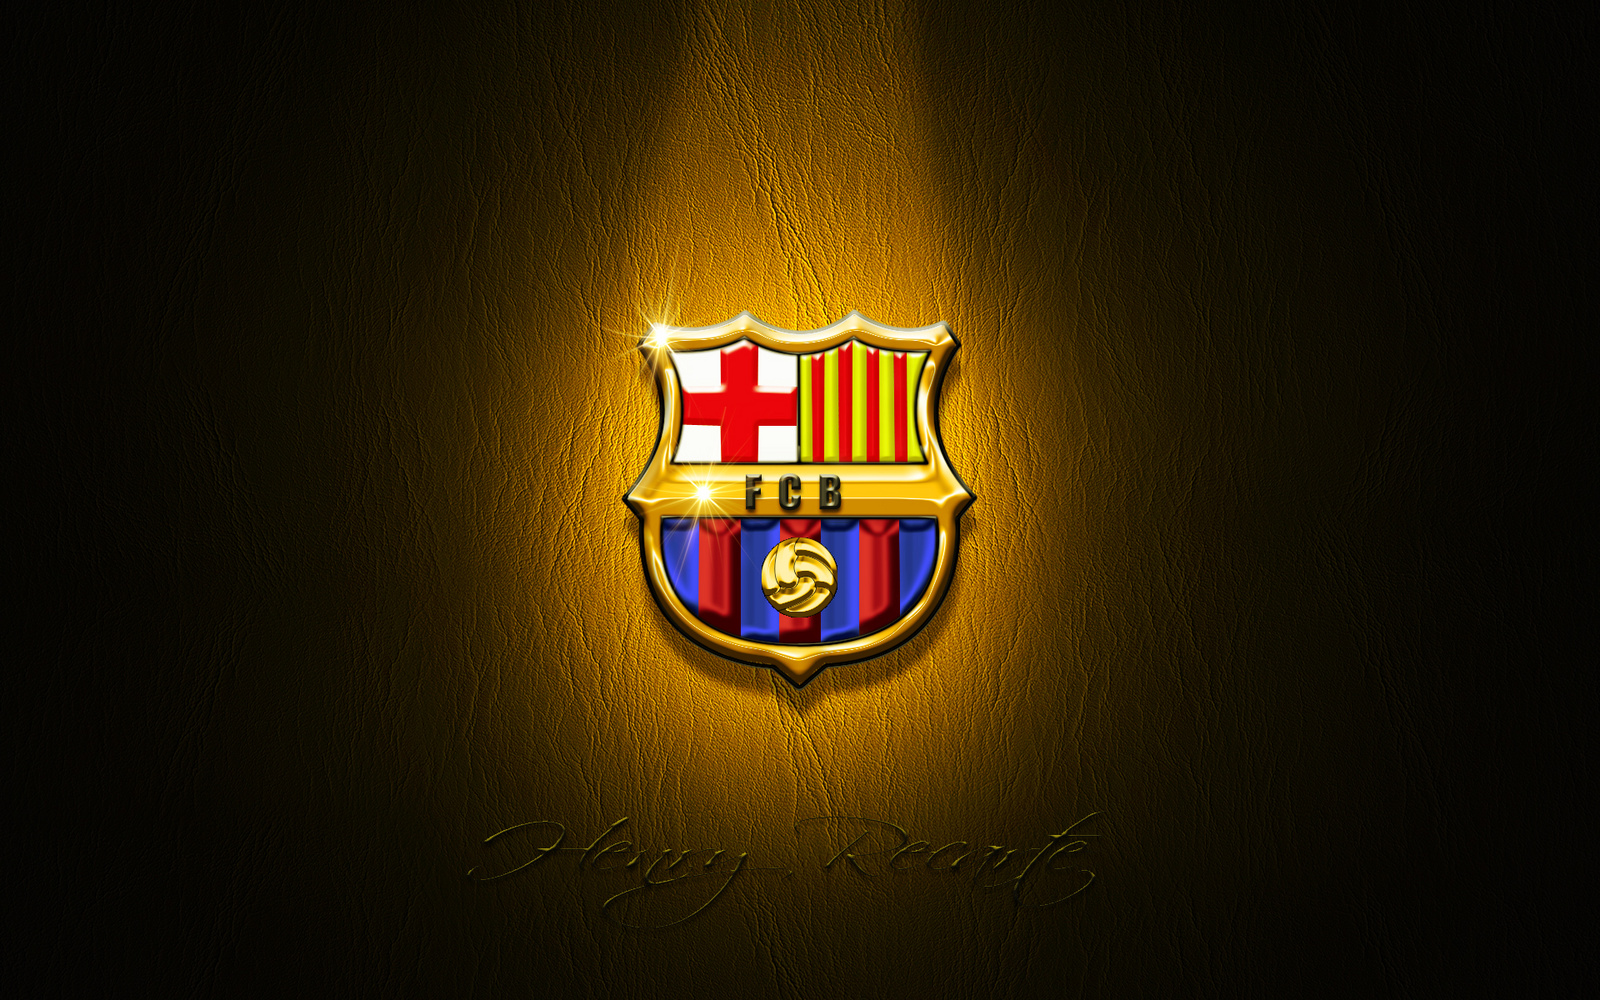 Every Thing Hd Wallpapers Fc Barcelona Soccer Club New Hd